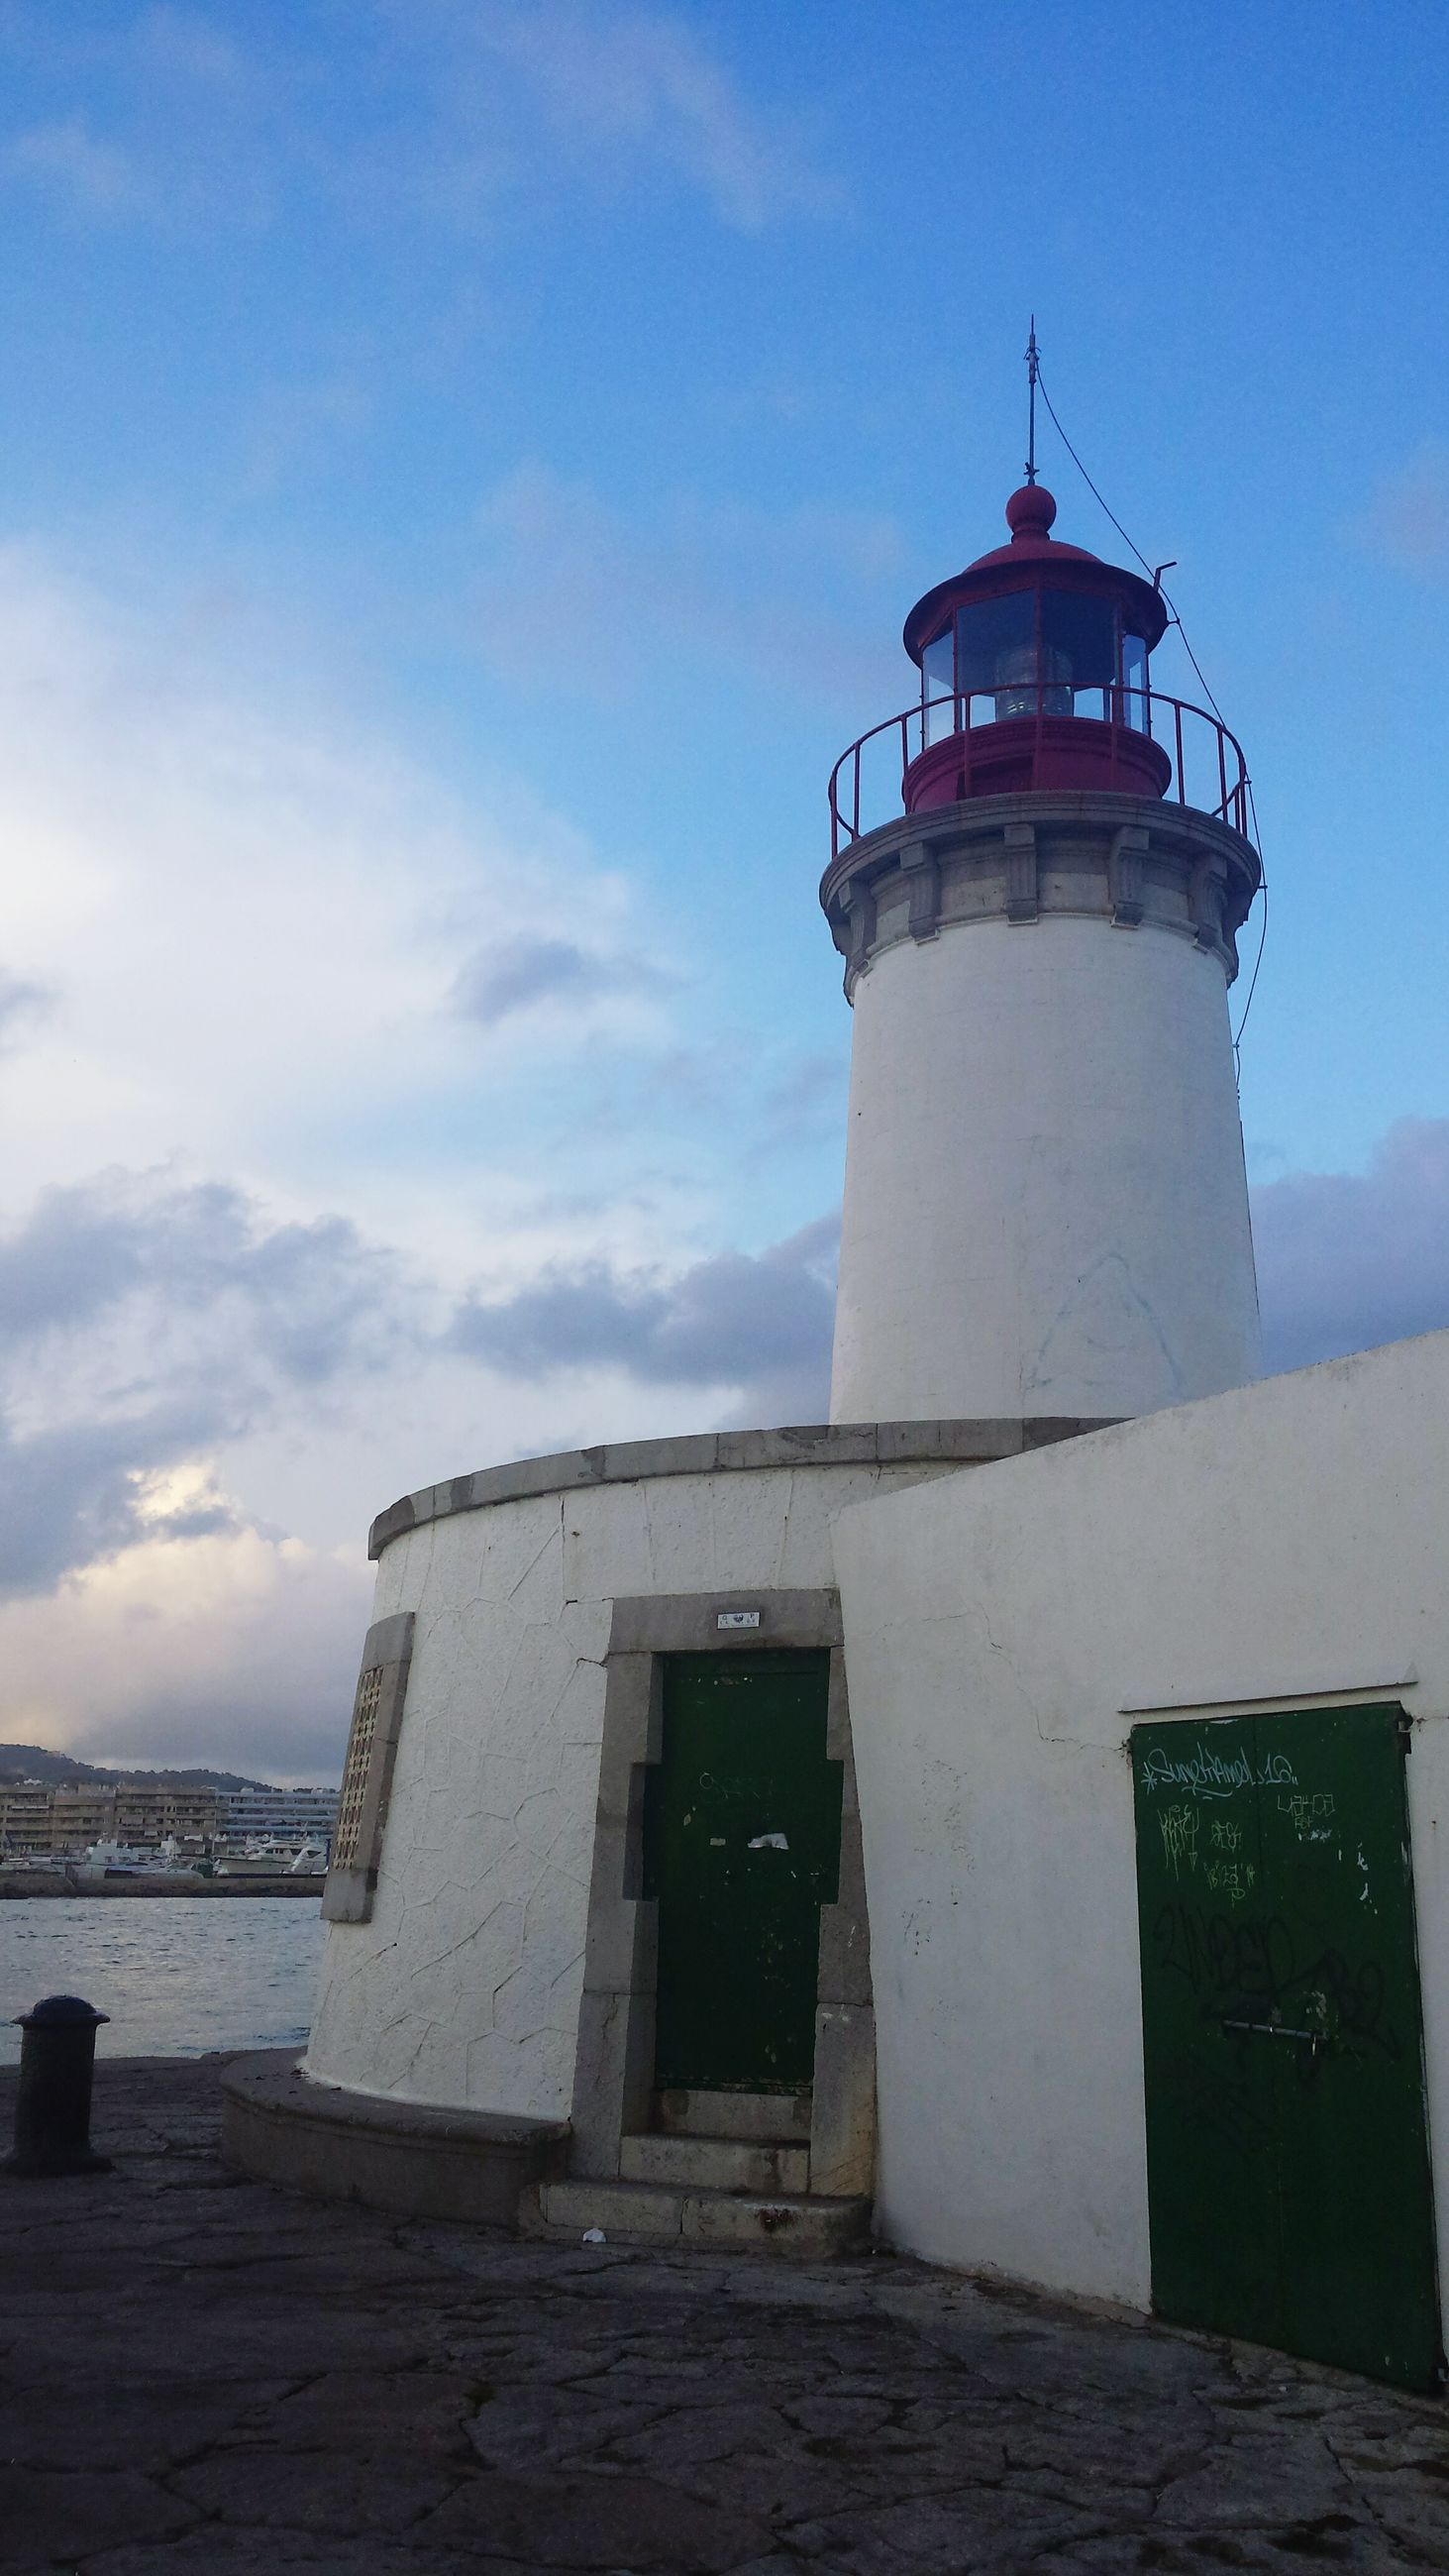 guidance, architecture, built structure, building exterior, lighthouse, direction, protection, safety, security, sea, low angle view, sky, tower, horizon over water, blue, water, outdoors, cloud - sky, surveillance, tall - high, weathered, no people, coastline, facade